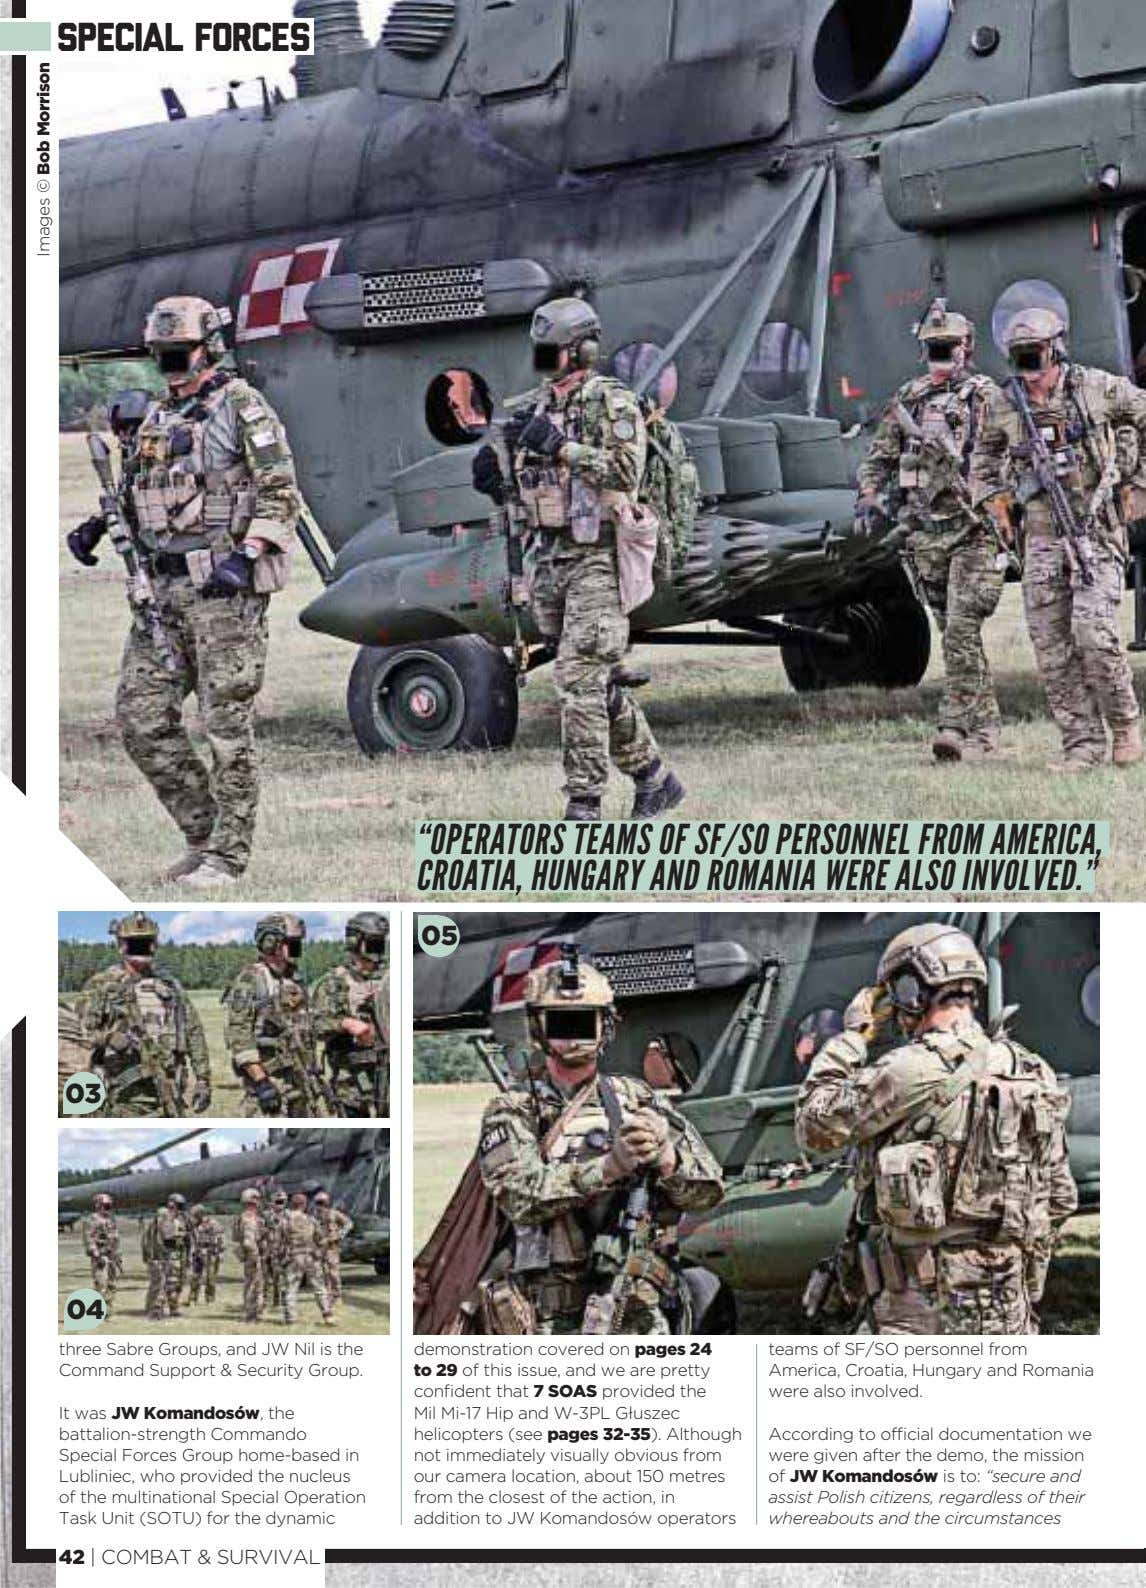 "special forces ""OPERATORS TEAMS OF SF/SO PERSONNEL FROM AMERICA, CROATIA, HUNGARY AND ROMANIA WERE ALSO"